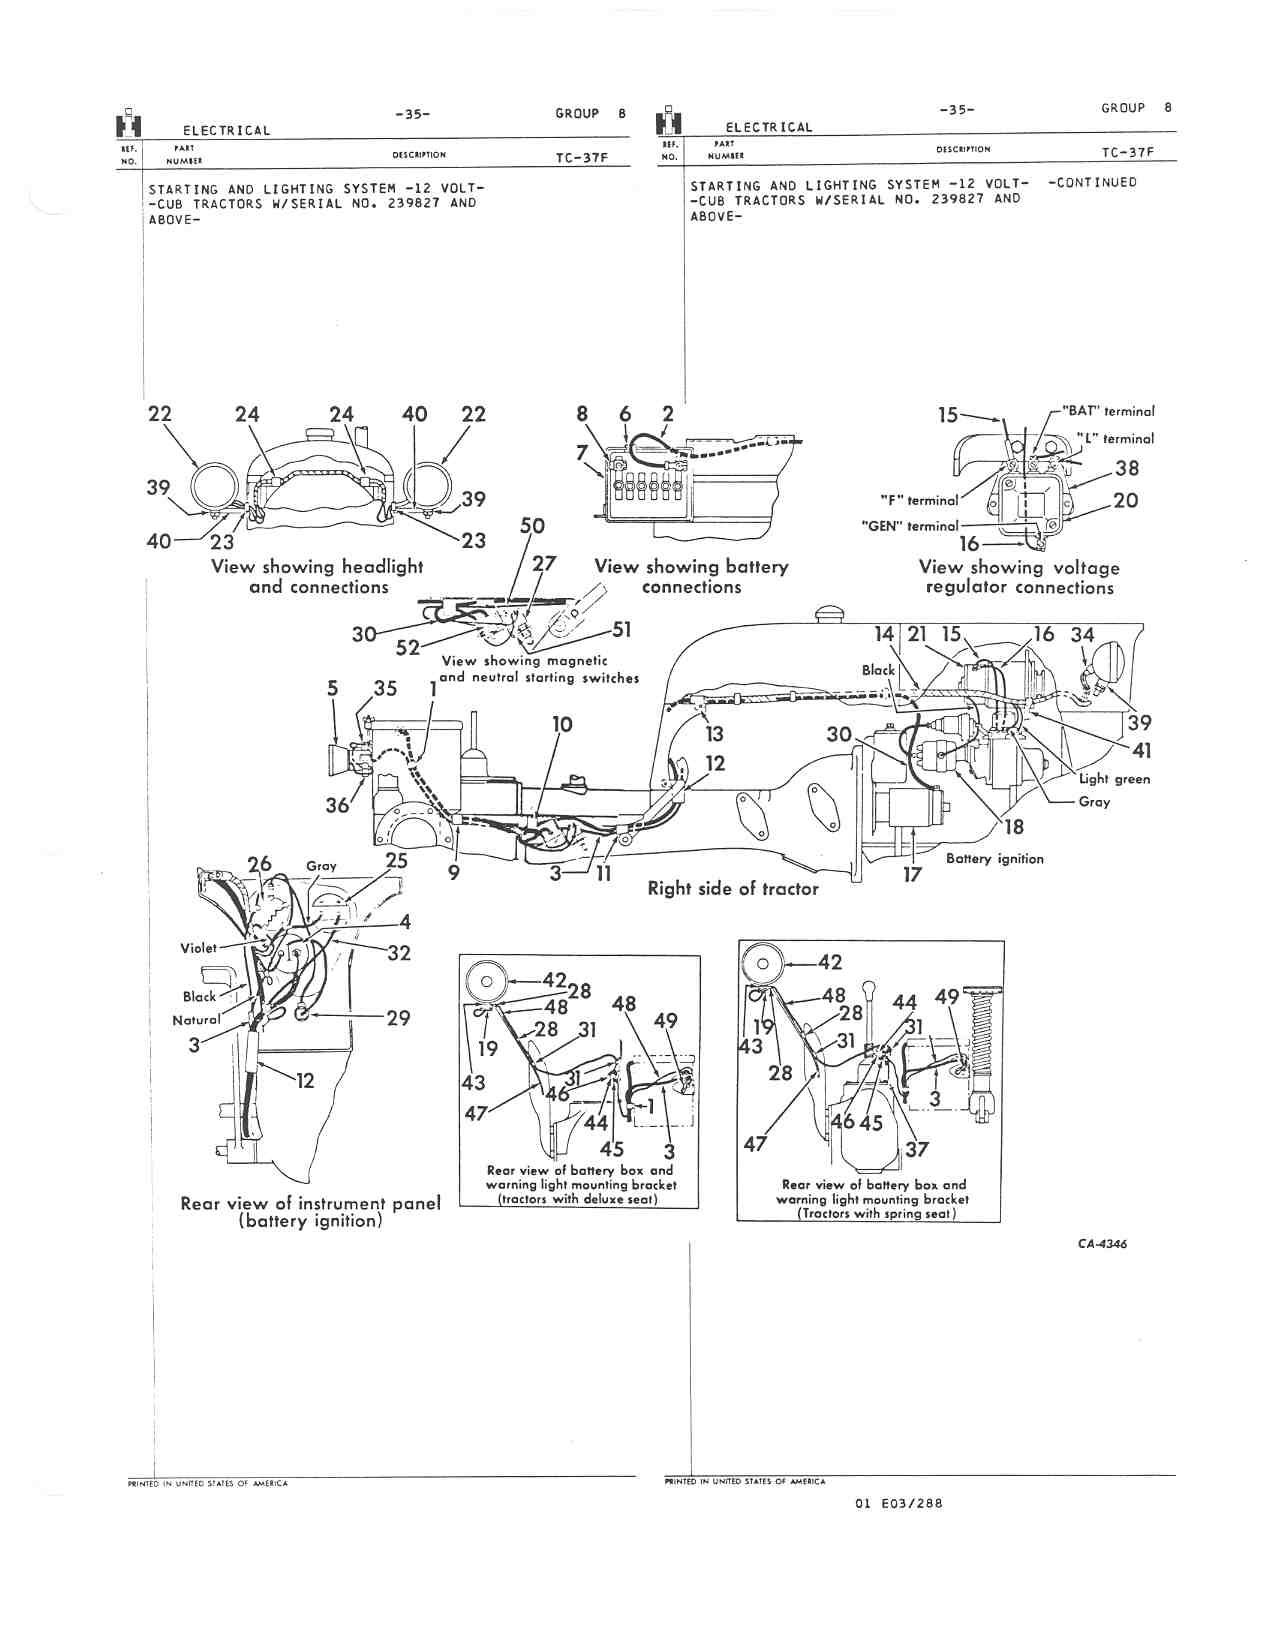 hight resolution of farmall cub distributor wiring diagram schematics wiring diagrams u2022 rh seniorlivinguniversity co case 430 tractor wiring